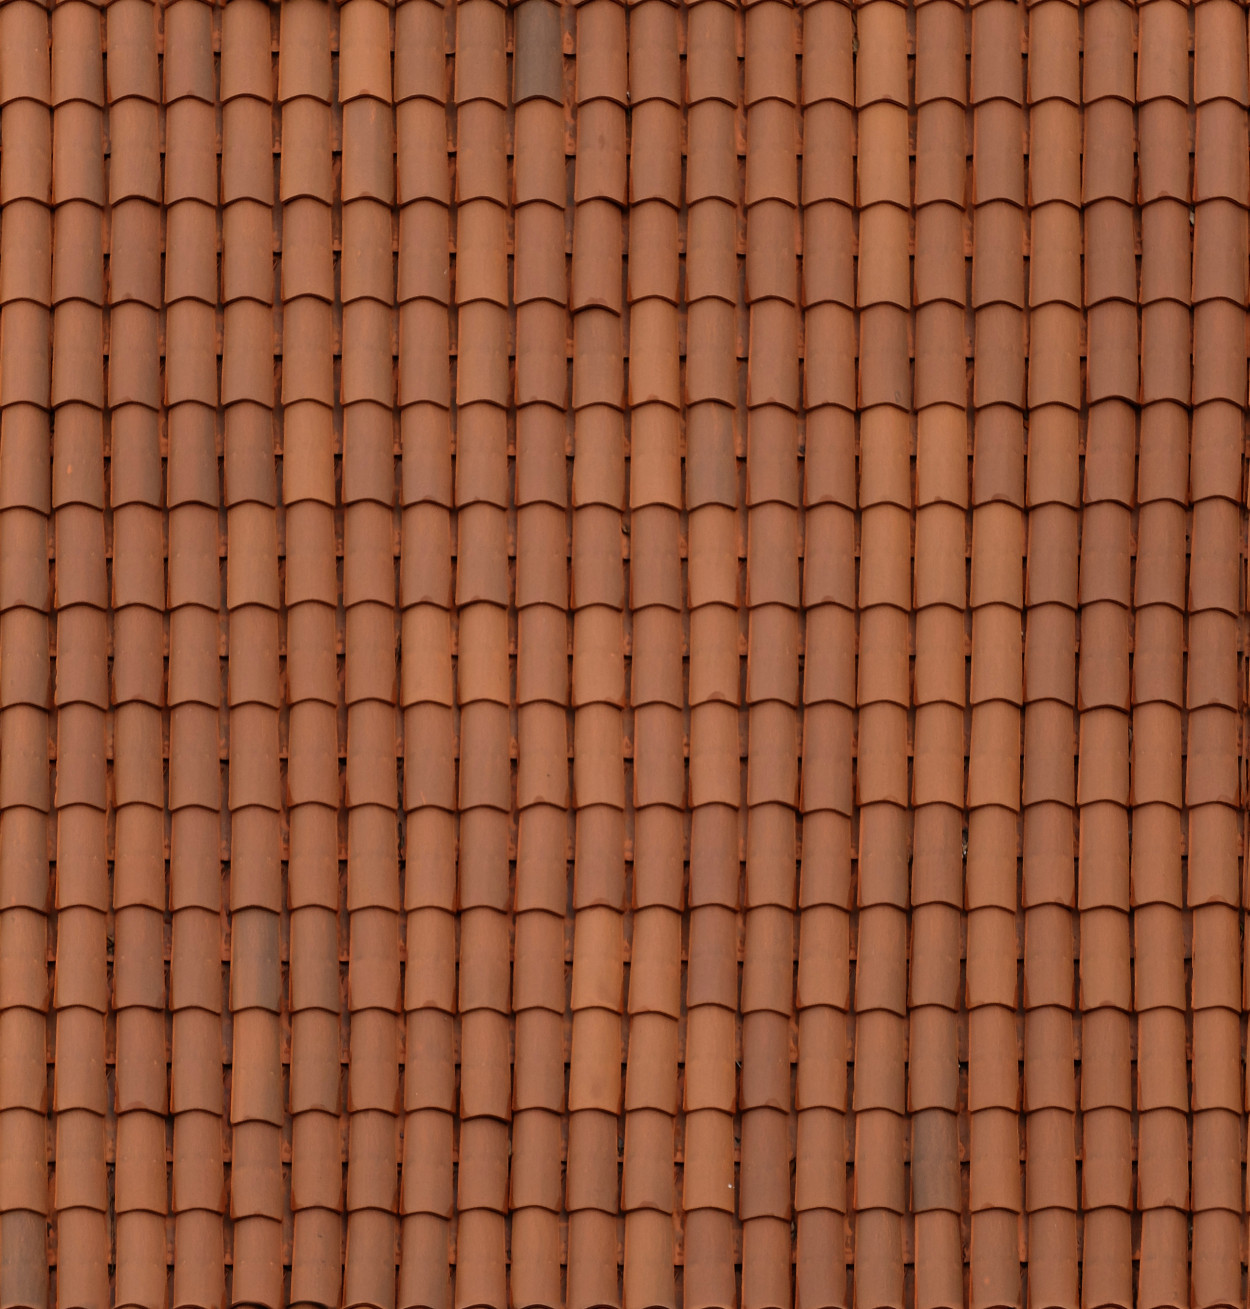 A seamless tile texture with   arranged in a  pattern